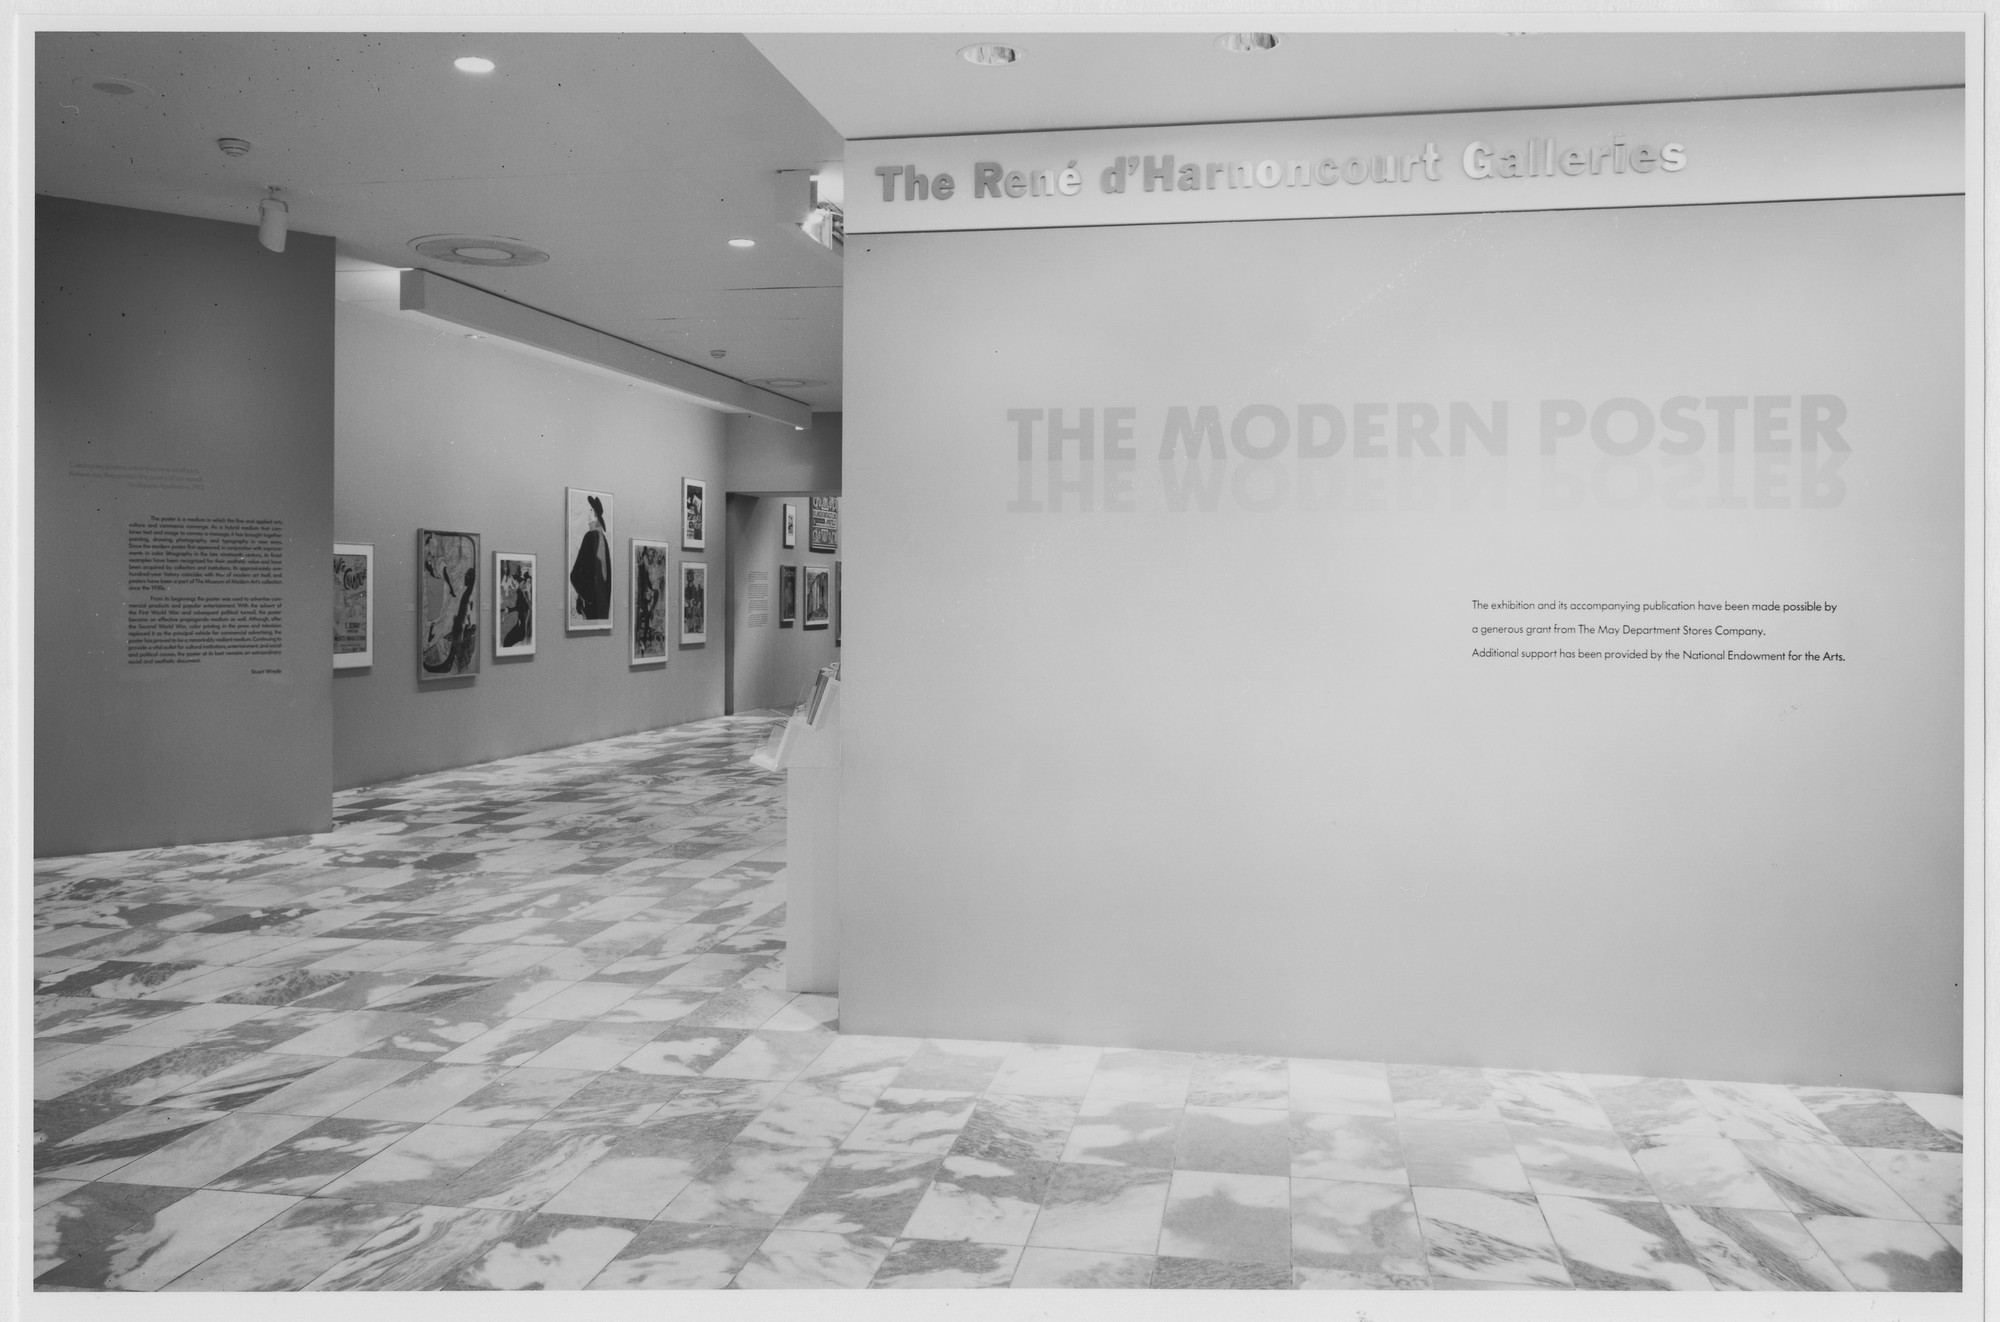 "Installation view of the exhibition, ""The Modern Poster"" June 6, 1988–September 6, 1988. Photographic Archive. The Museum of Modern Art Archives, New York. IN1487.1. Photograph by Mali Olatunji."